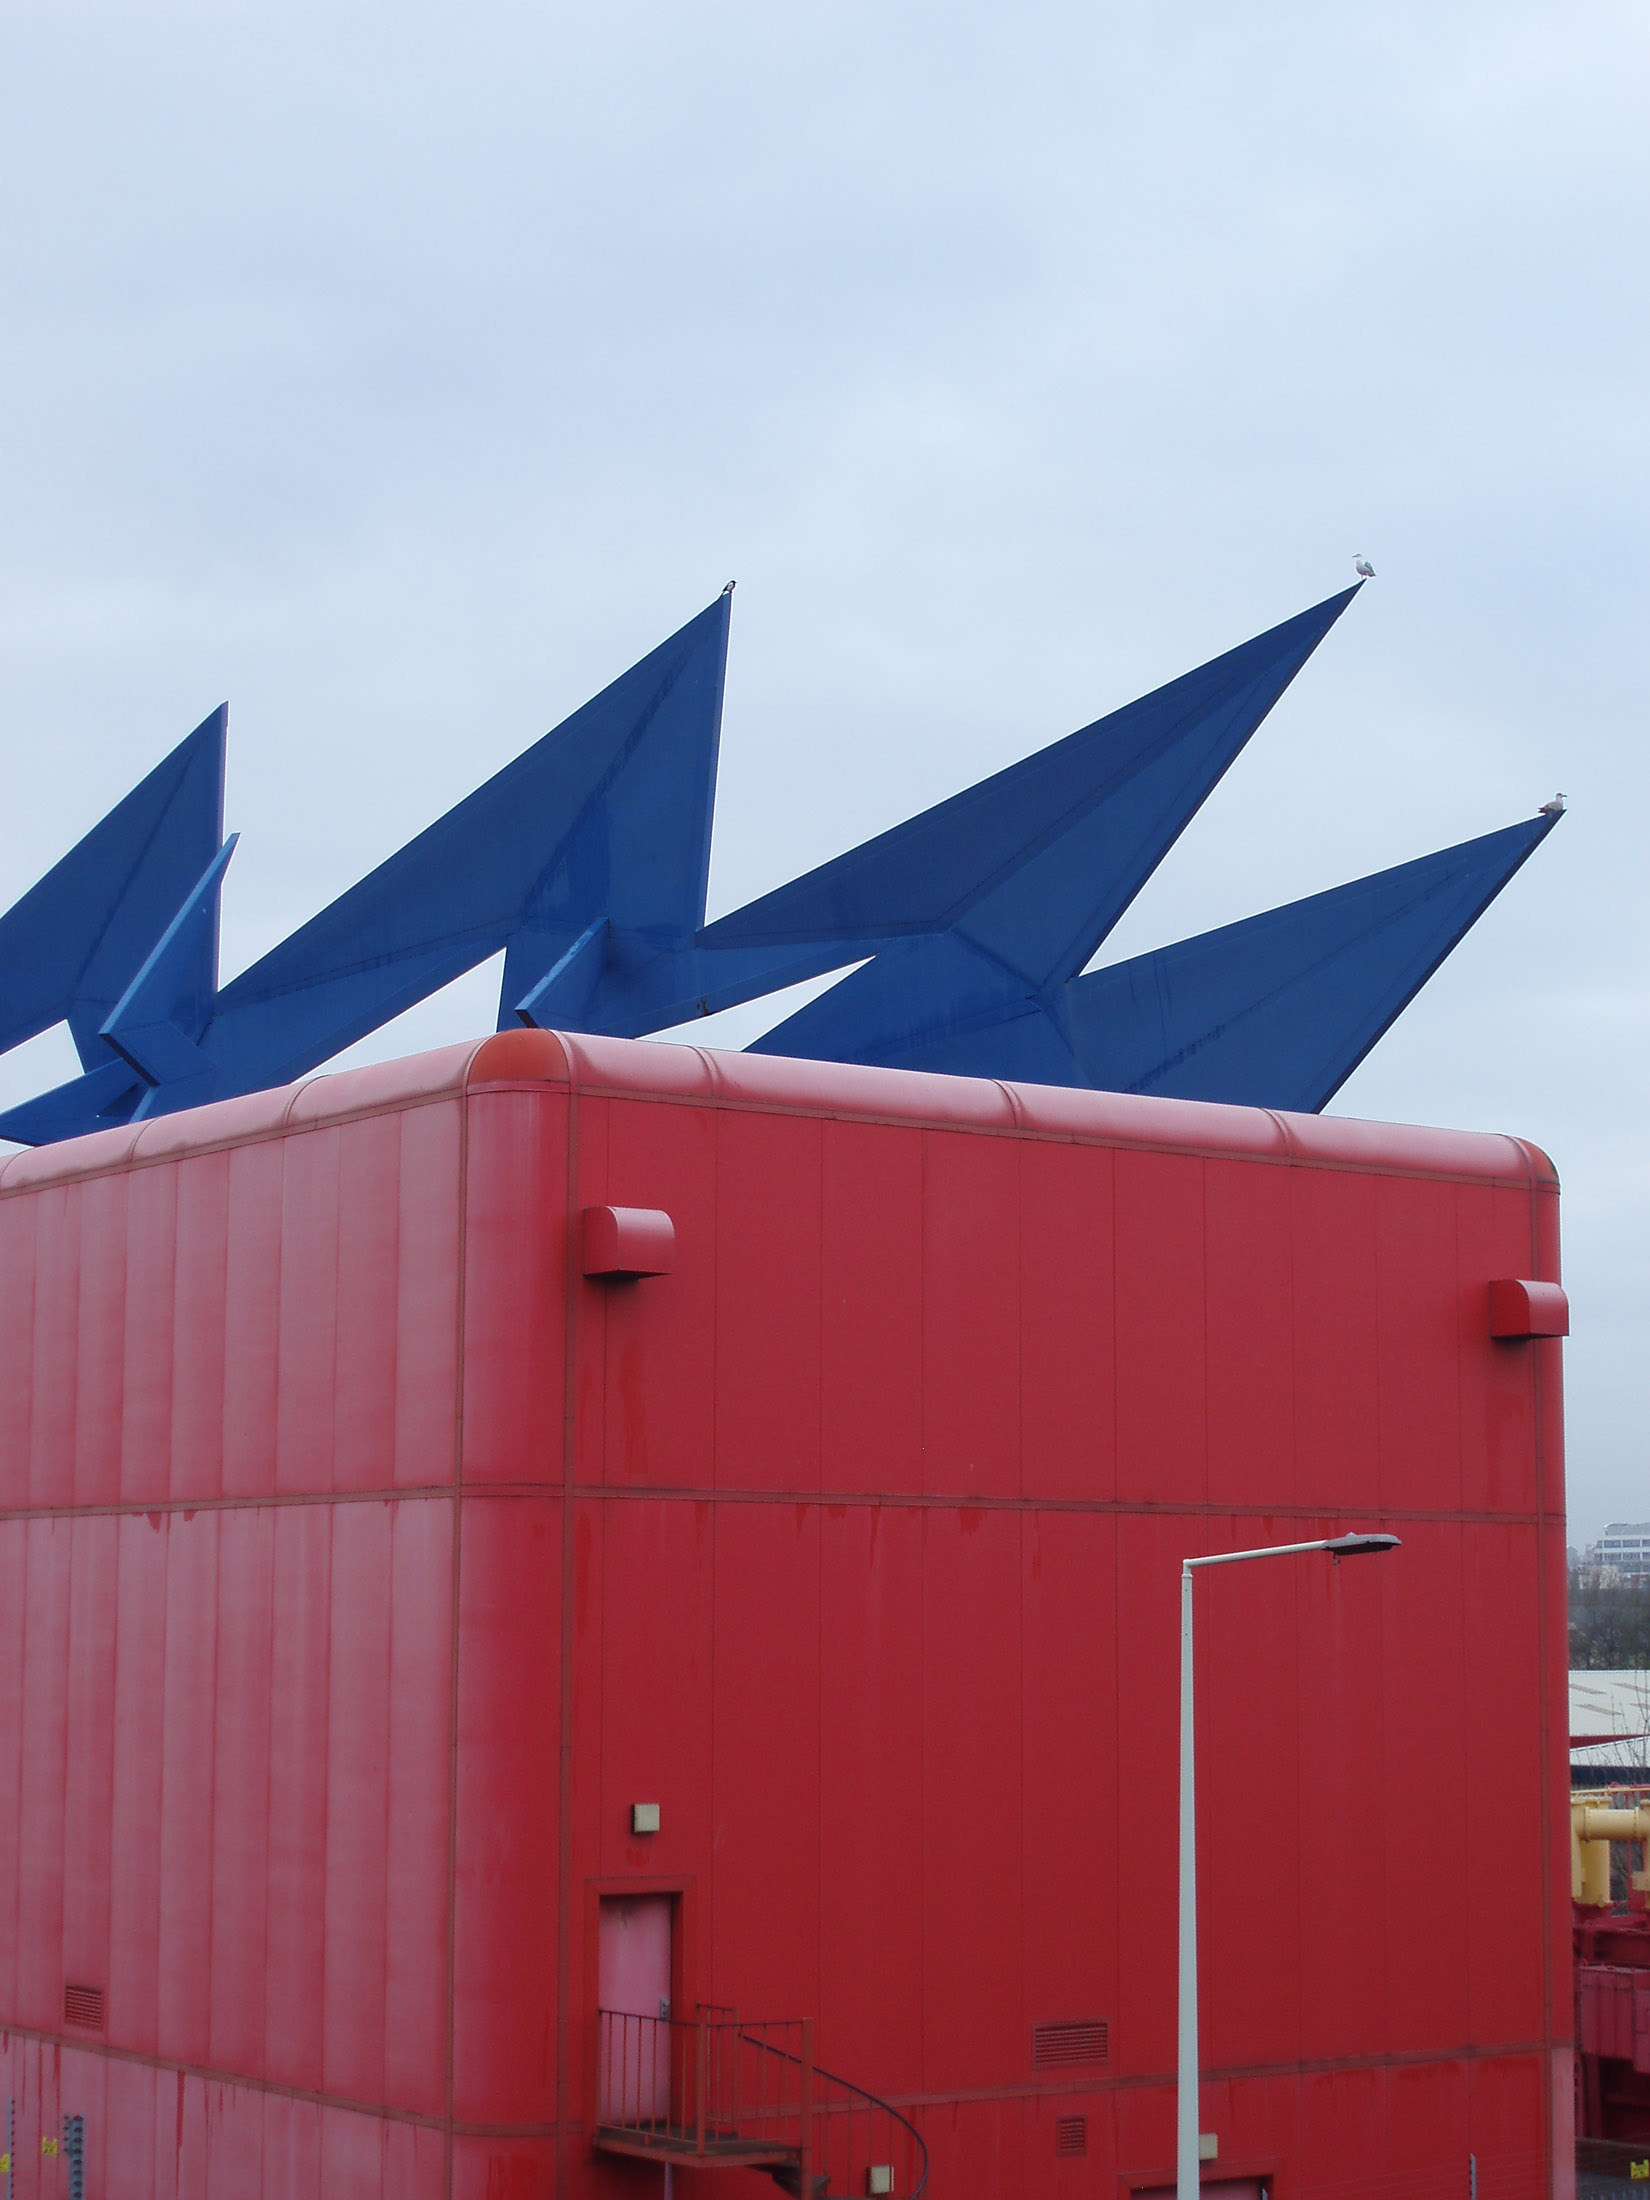 Contemporary art on a powerbox substation in the docklands in Cardiff Bay, Wales with a colorful blue zigzag electric spark icon mounted over a red electricity substation